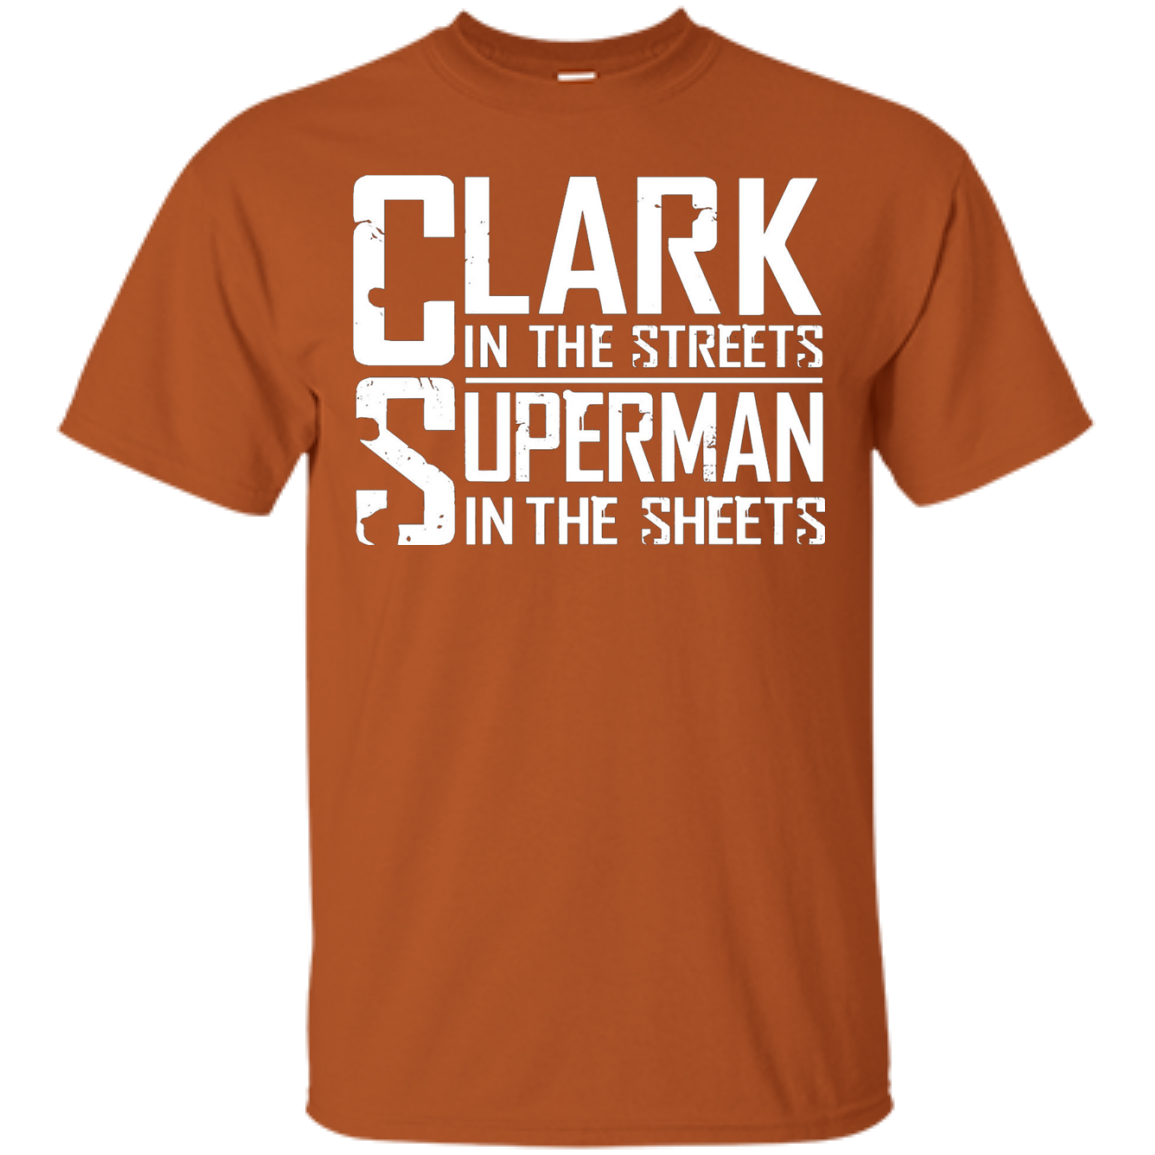 CLARK-IN THE STREETS SUPER-MAN IN THE SHEETS - T-Shirt